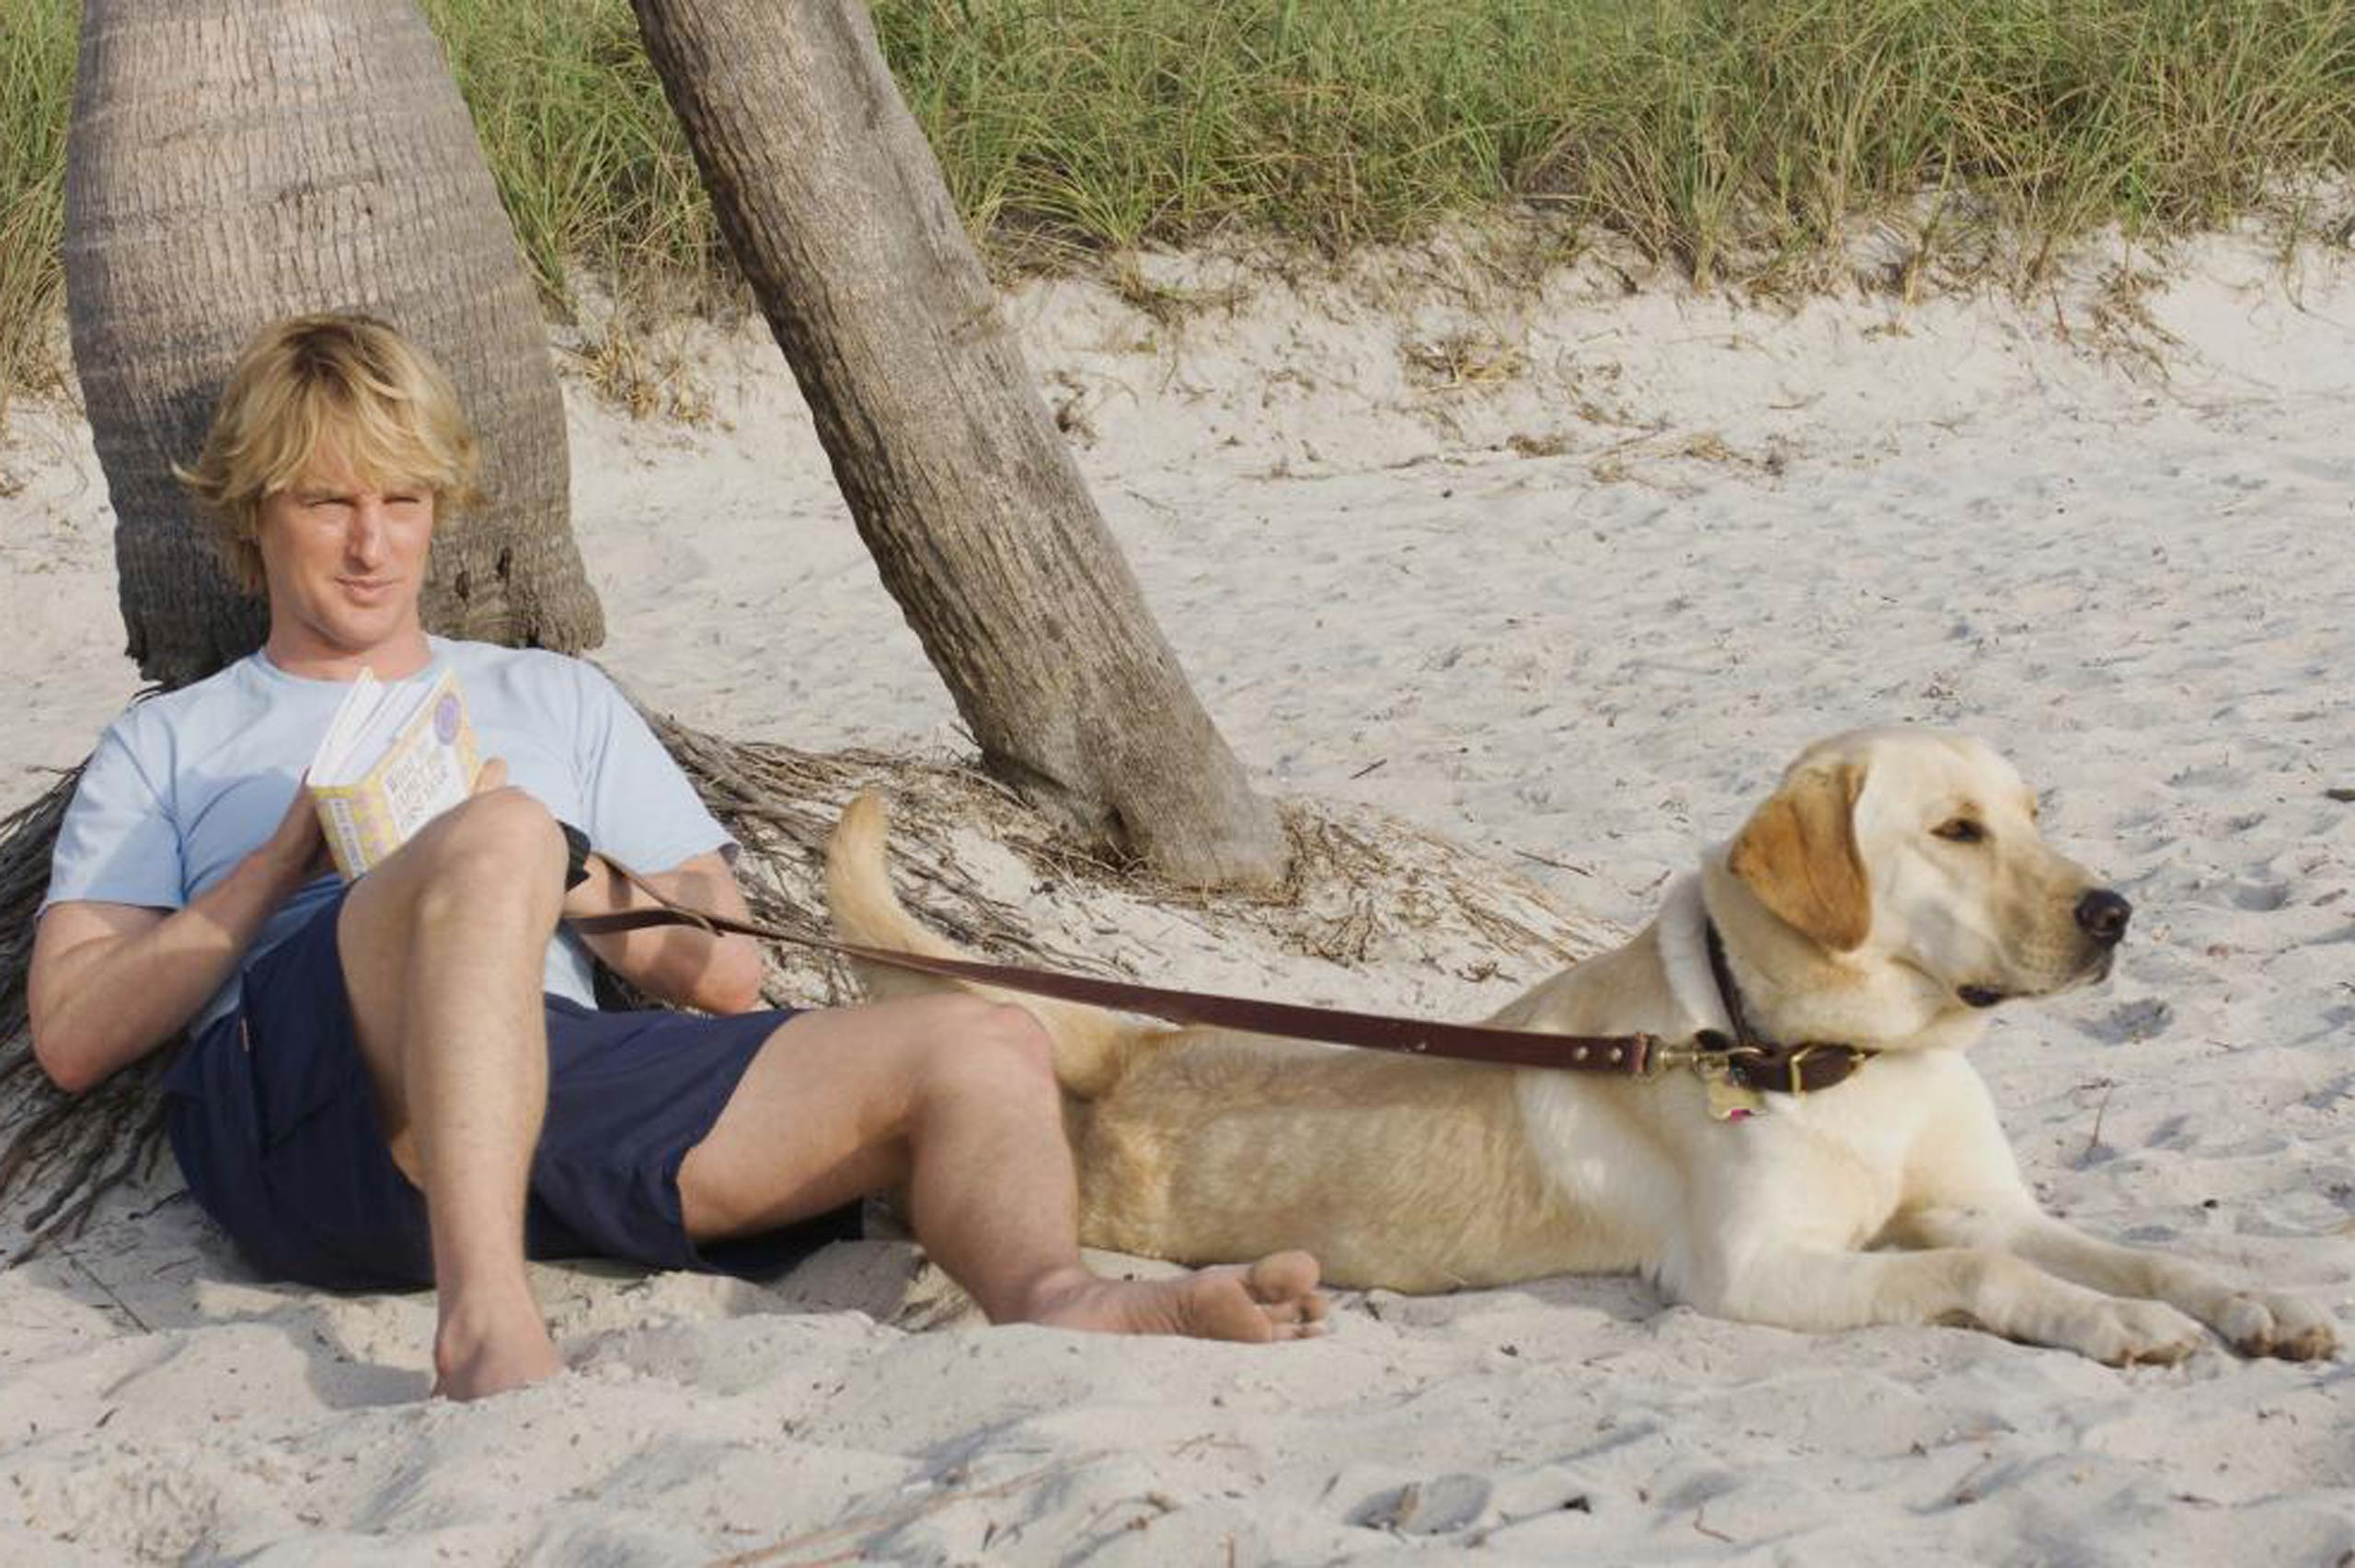 <strong><i>Marley &amp; Me</i> (NBC)</strong>                                                                      Though the <i>Marley &amp; Me</i> movie may have been a tear-jerker, the proposed TV show will be a comedy. Picking up where the film left off, John, Jenny and their three children will be forced to adopt a new stray puppy — whom they name Marley, of course.